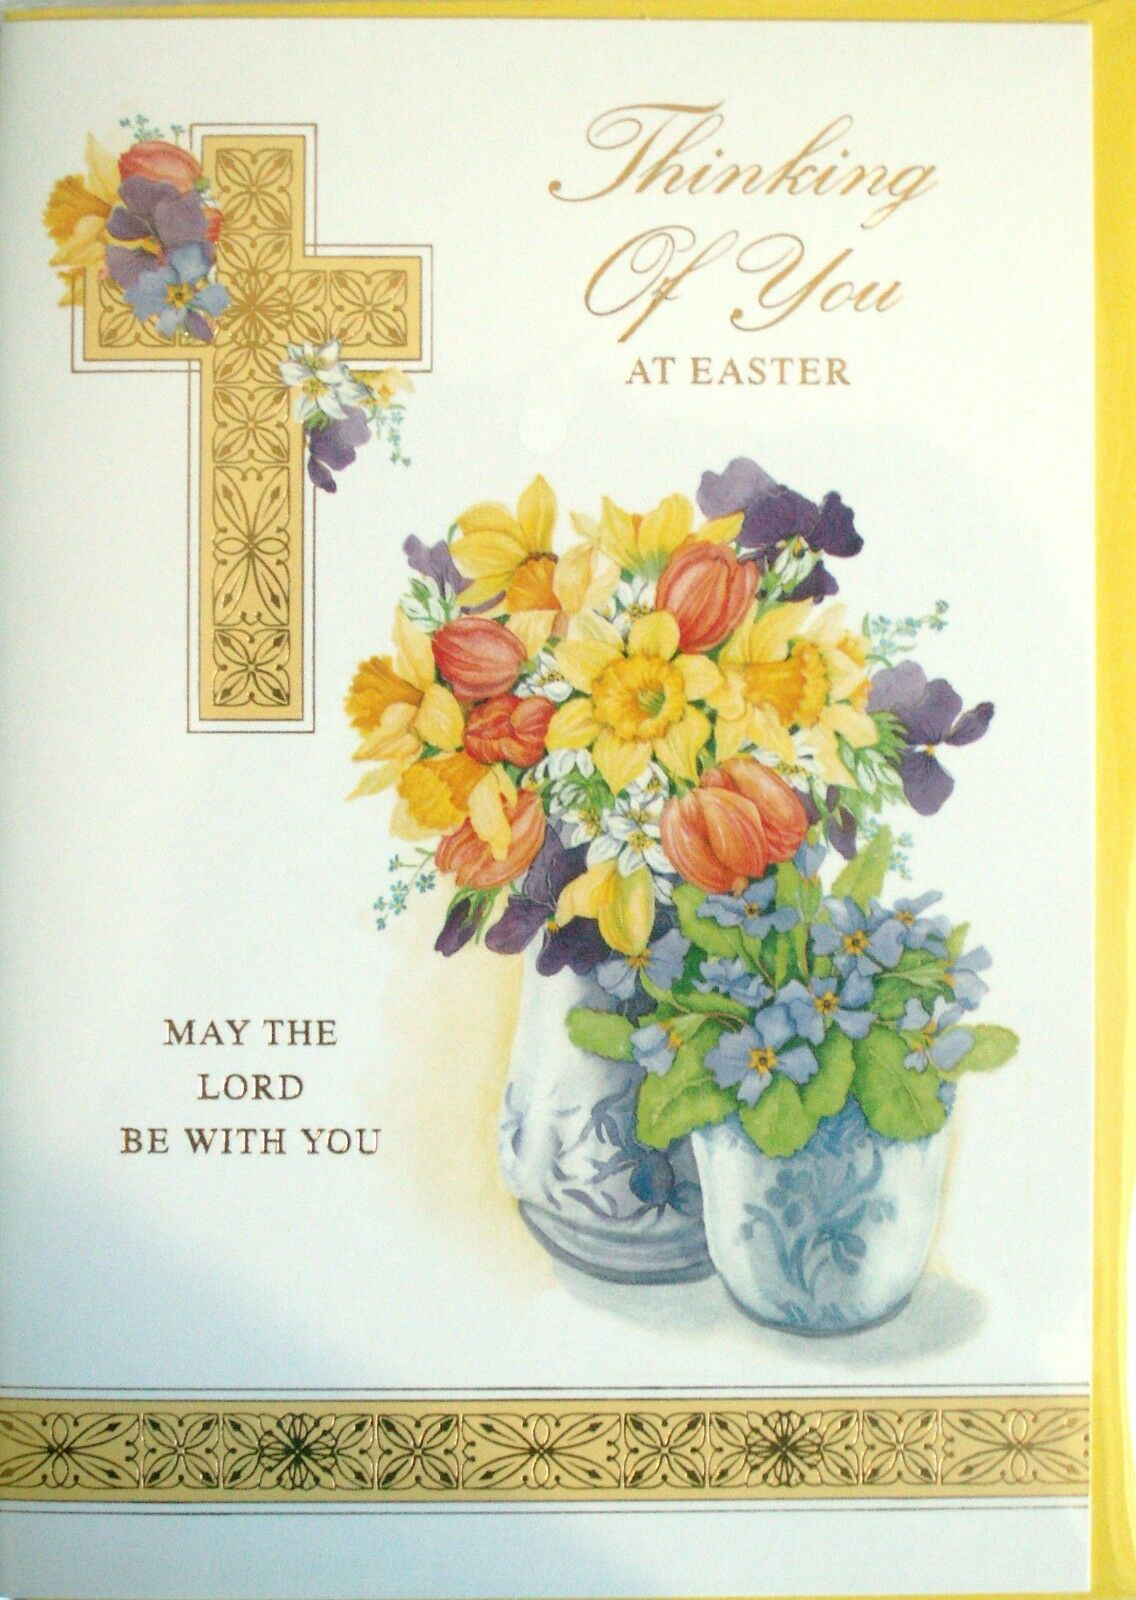 Thinking Of You At Easter Religious Theme Easter Card 199